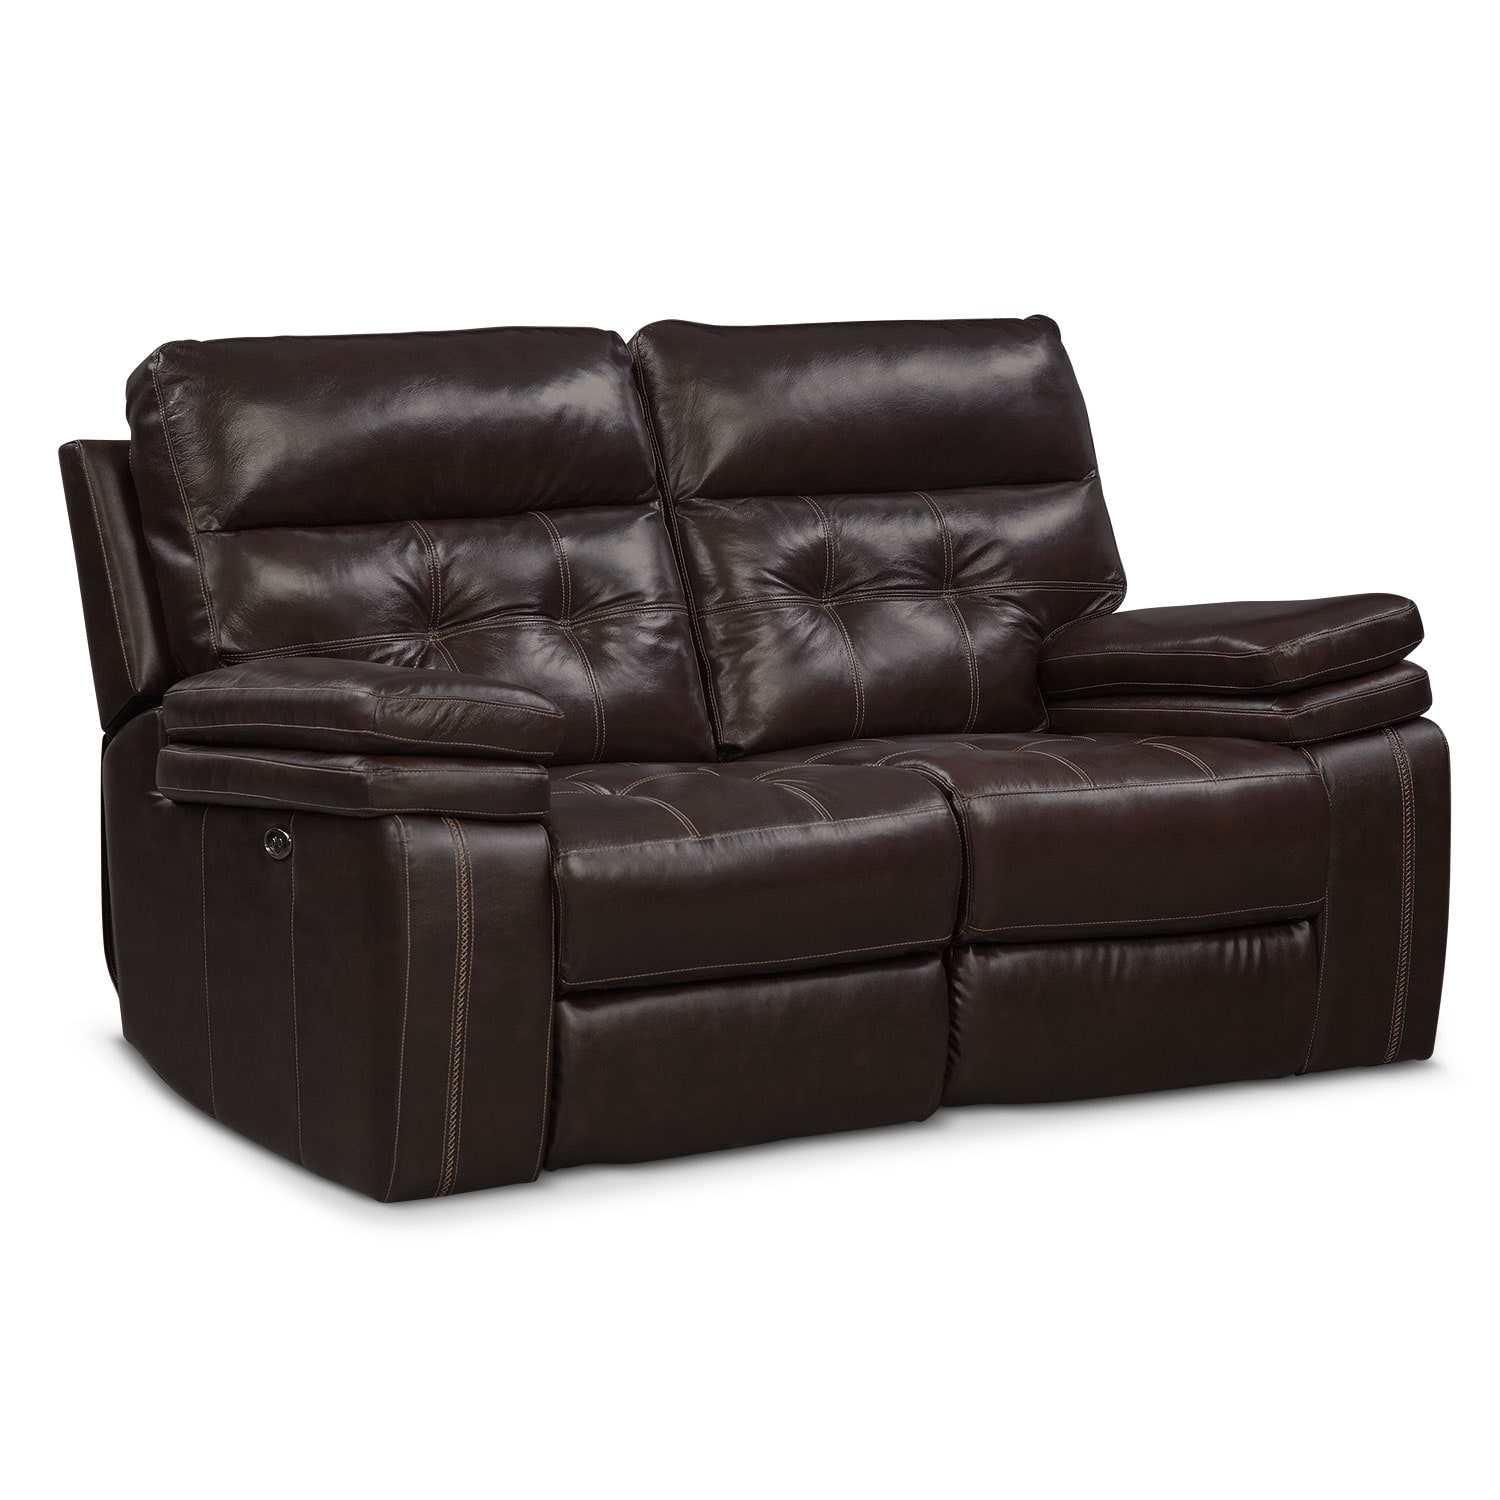 [Brisco Brown Power Reclining Loveseat]